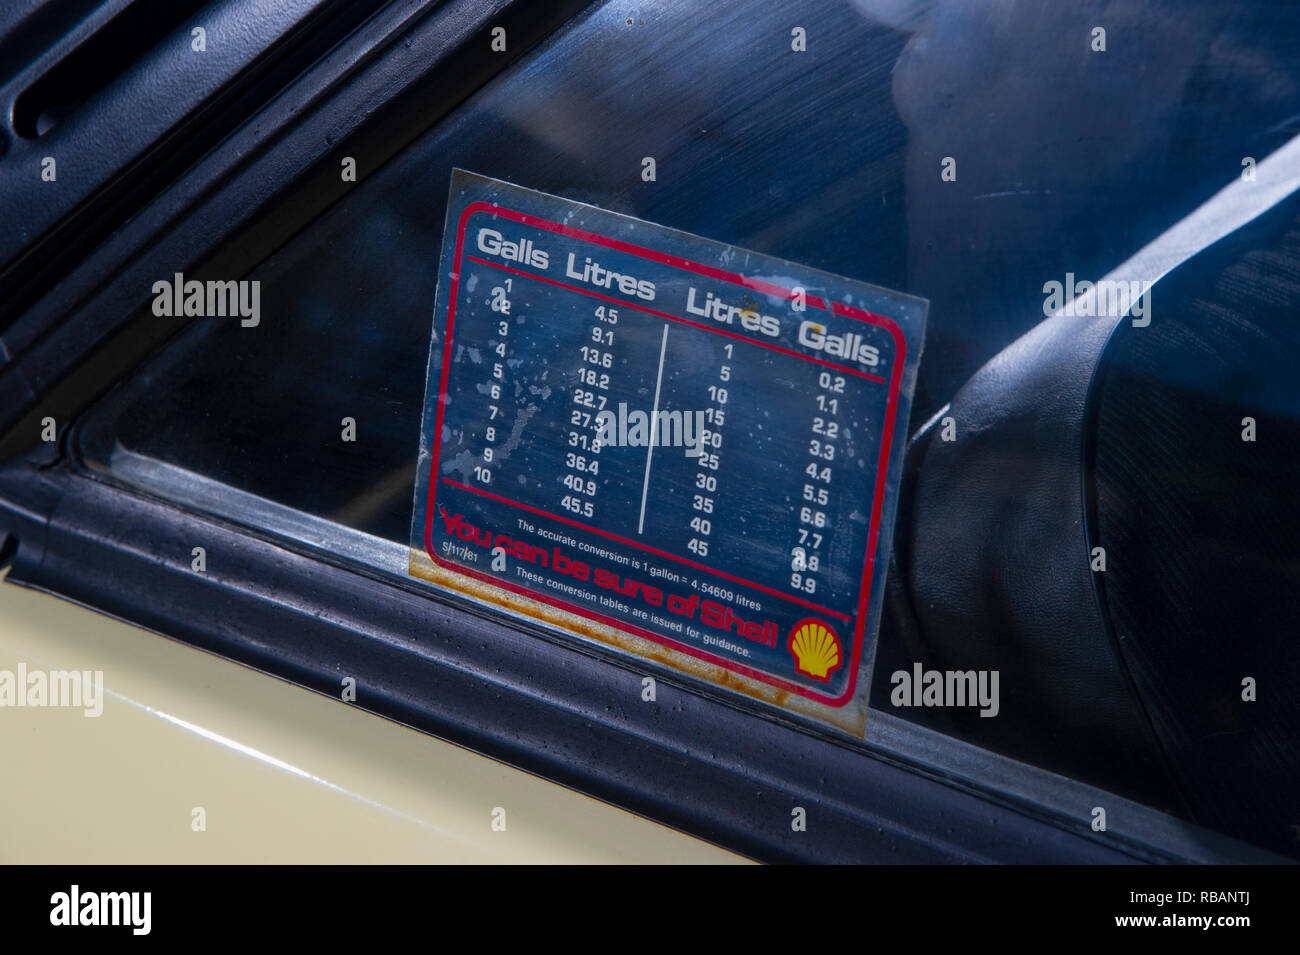 Gallons to litres conversion table sticker on a1980 Talbot Sunbeam Ti British hot hatch sports car - Stock Image